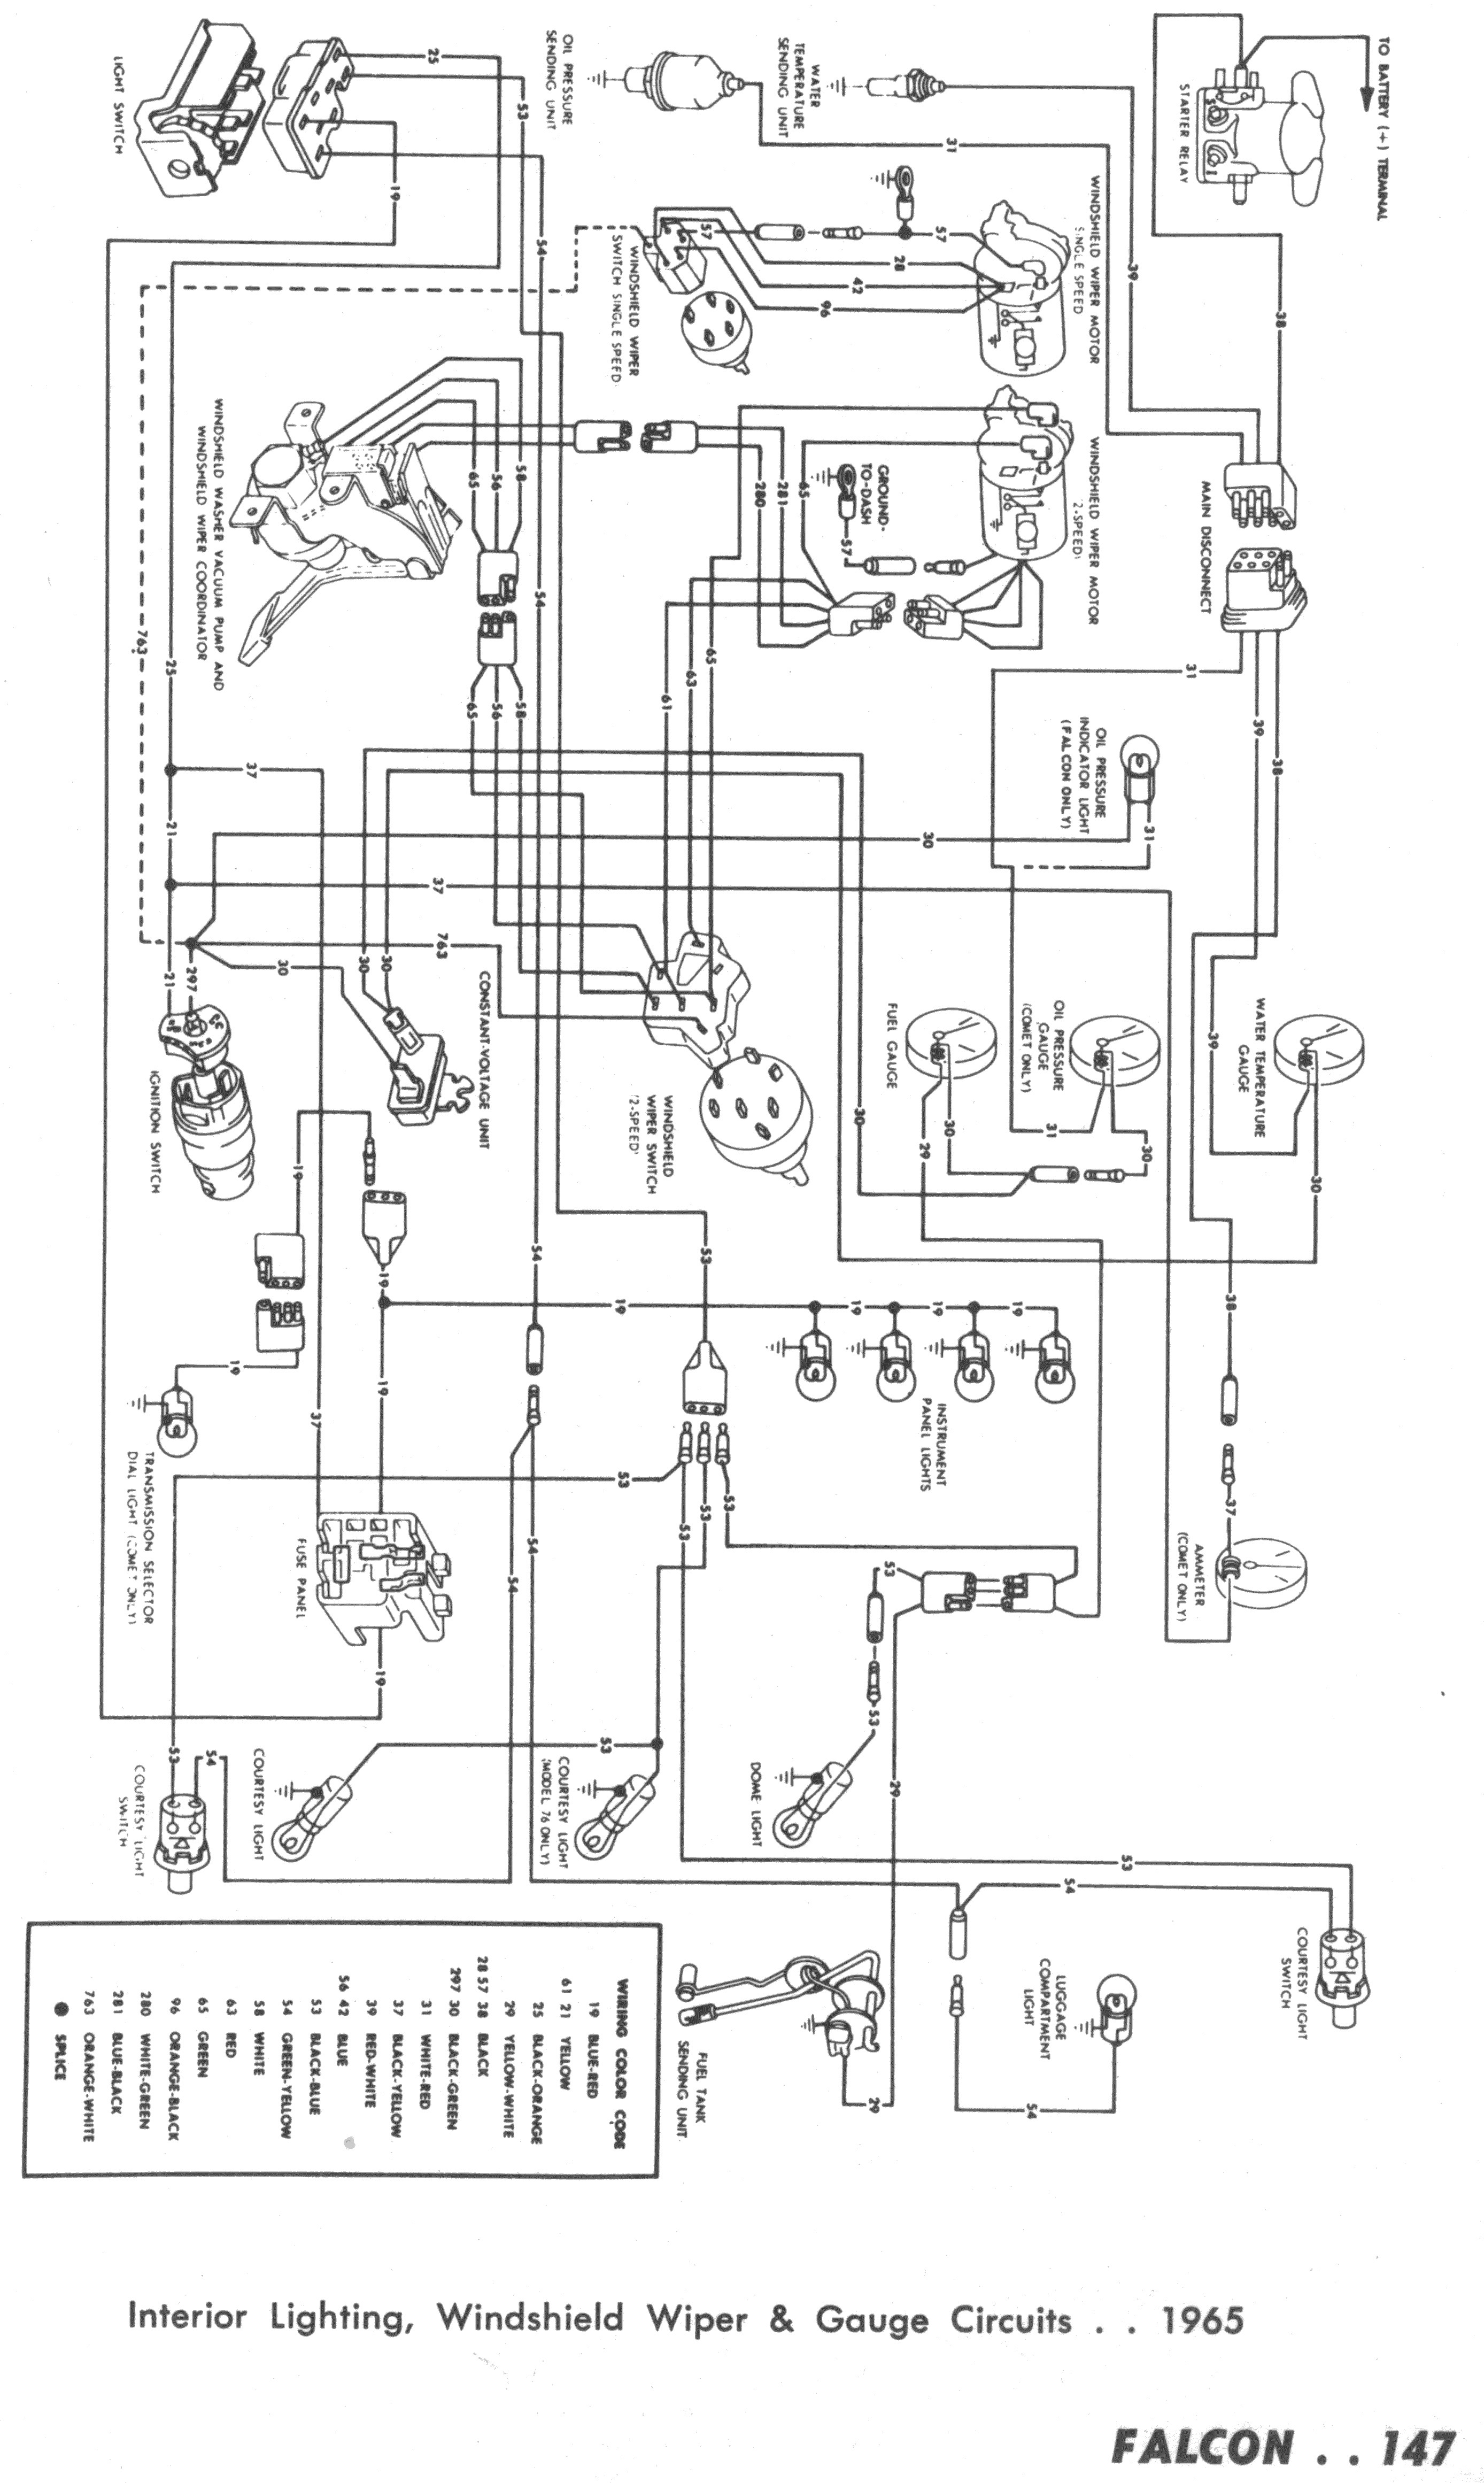 Technics home stereo wiring diagrams caterpillar c13 wiring Home Theater Speaker Wire Whole House Generator Wiring Diagram Home Stereo Controls